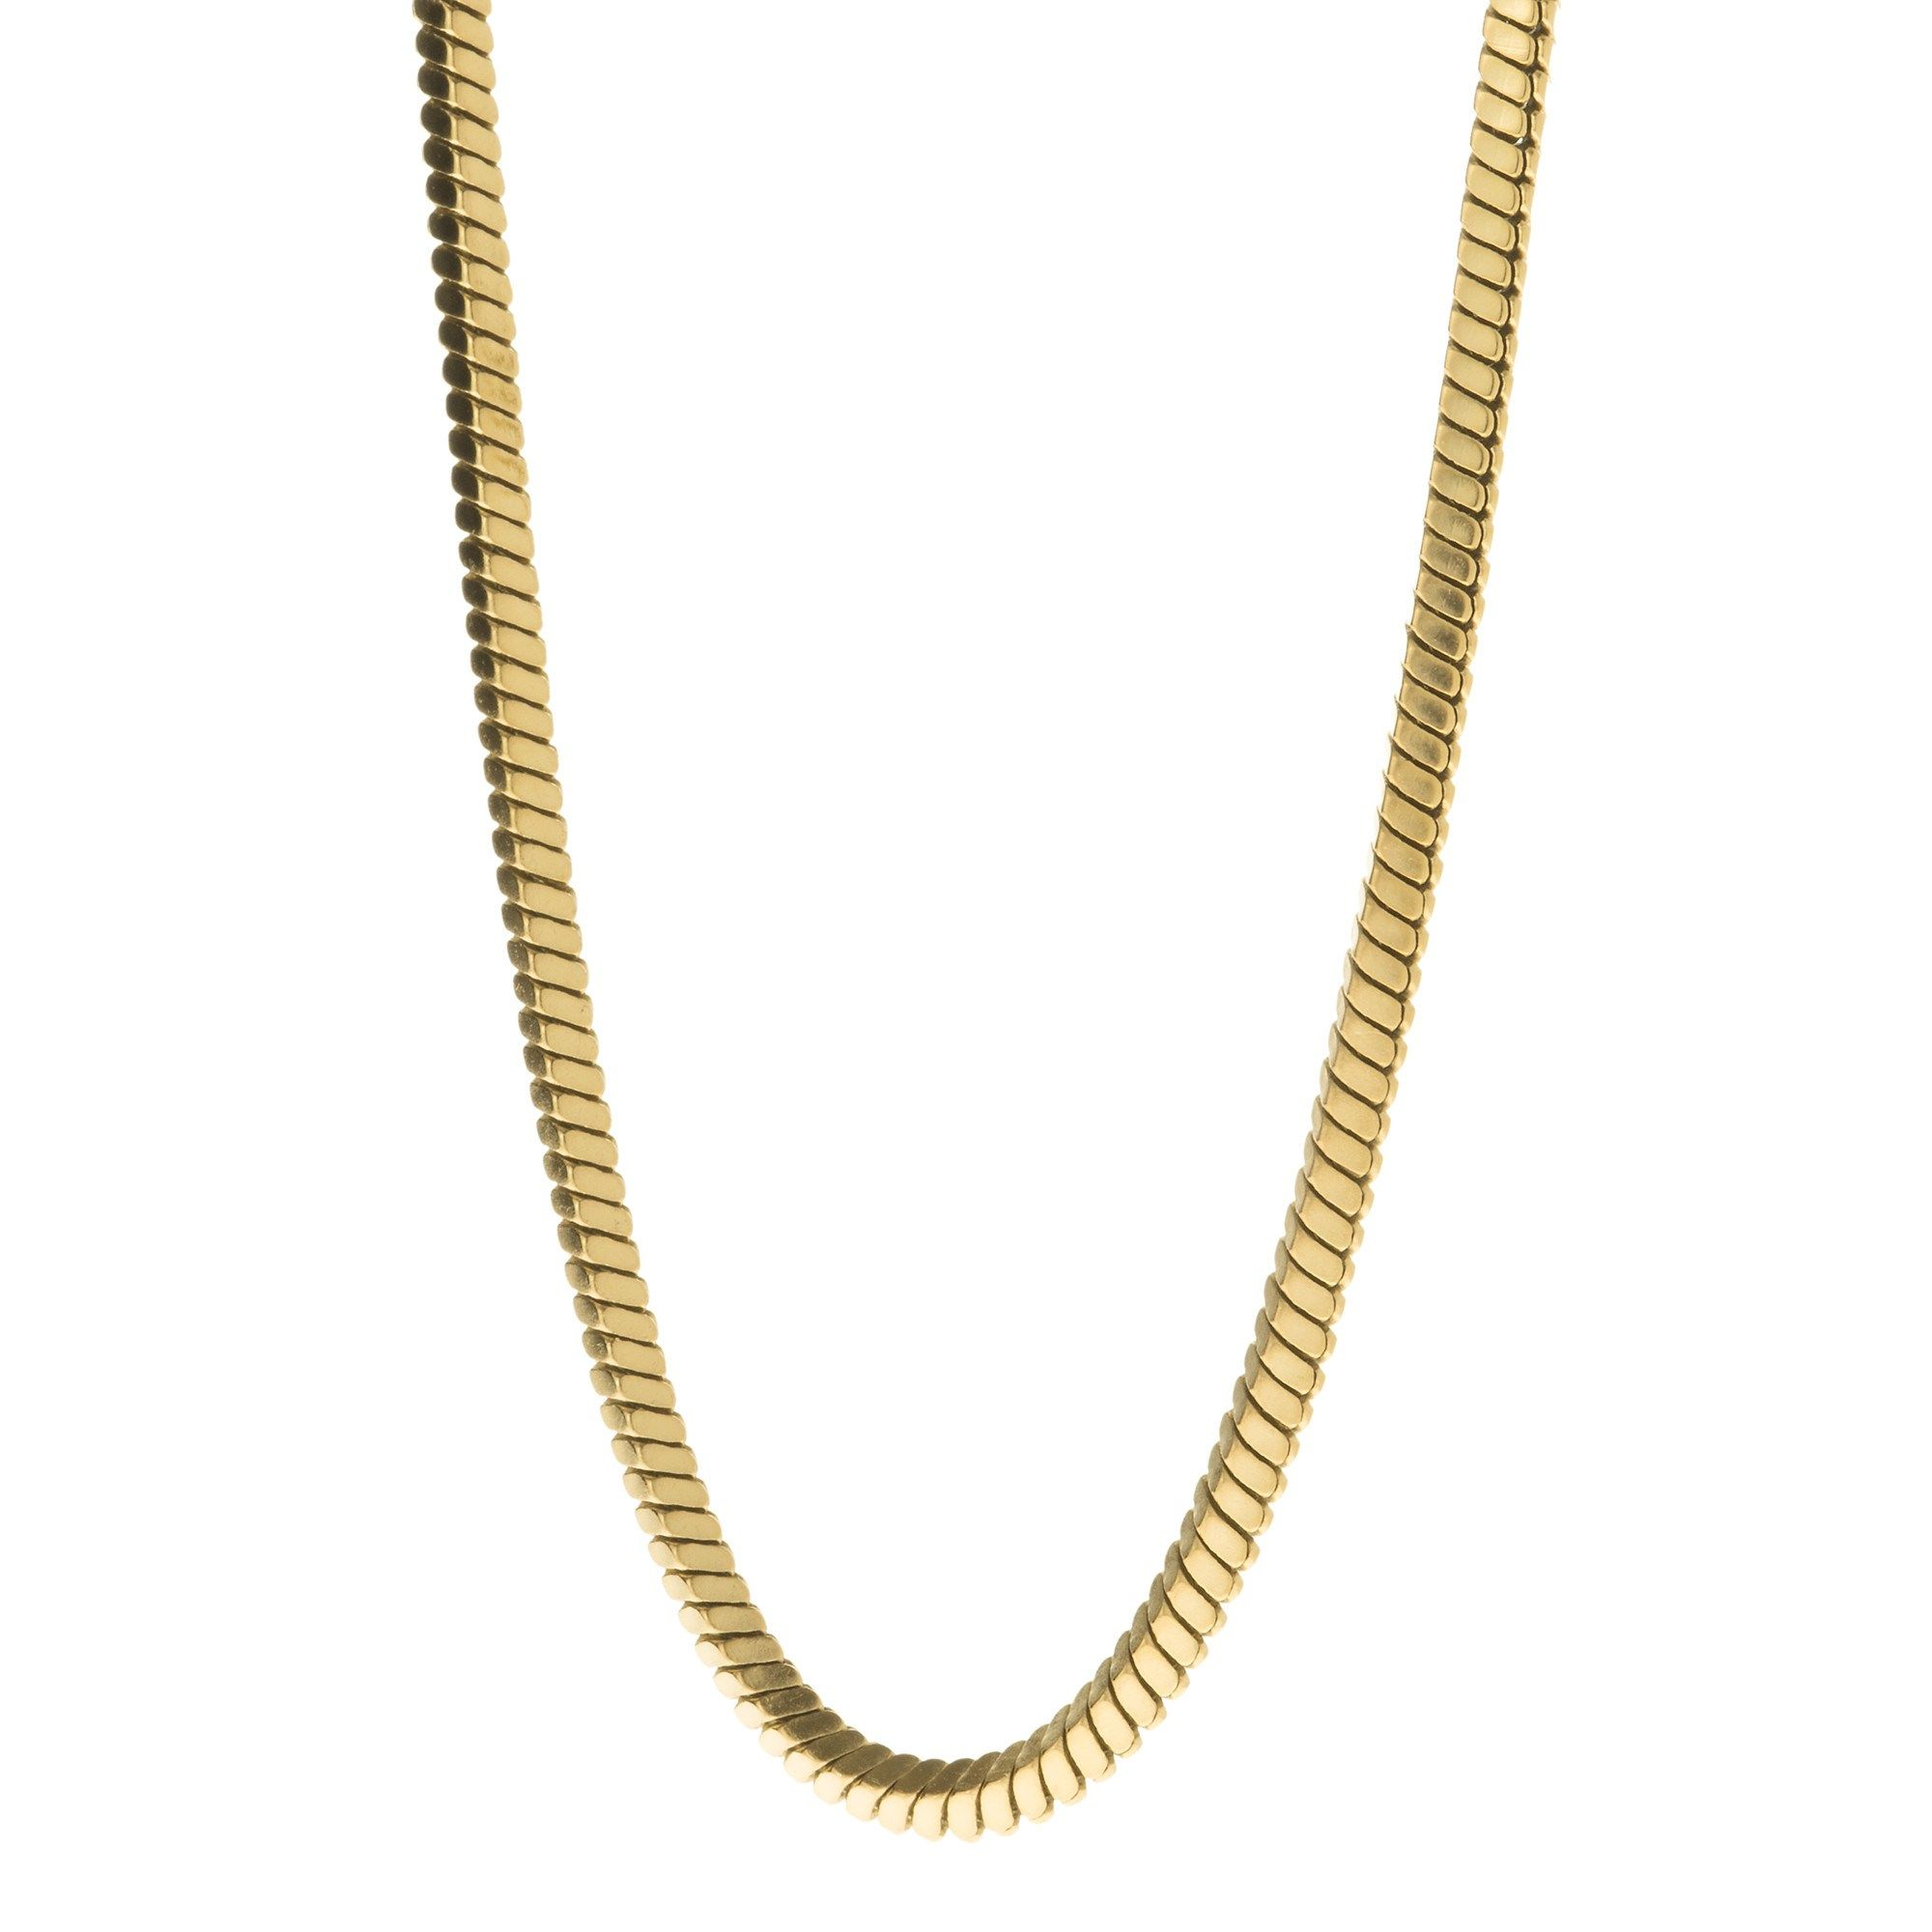 fine alive necklaces necklace gifts the chains plated isla gold online pin buy